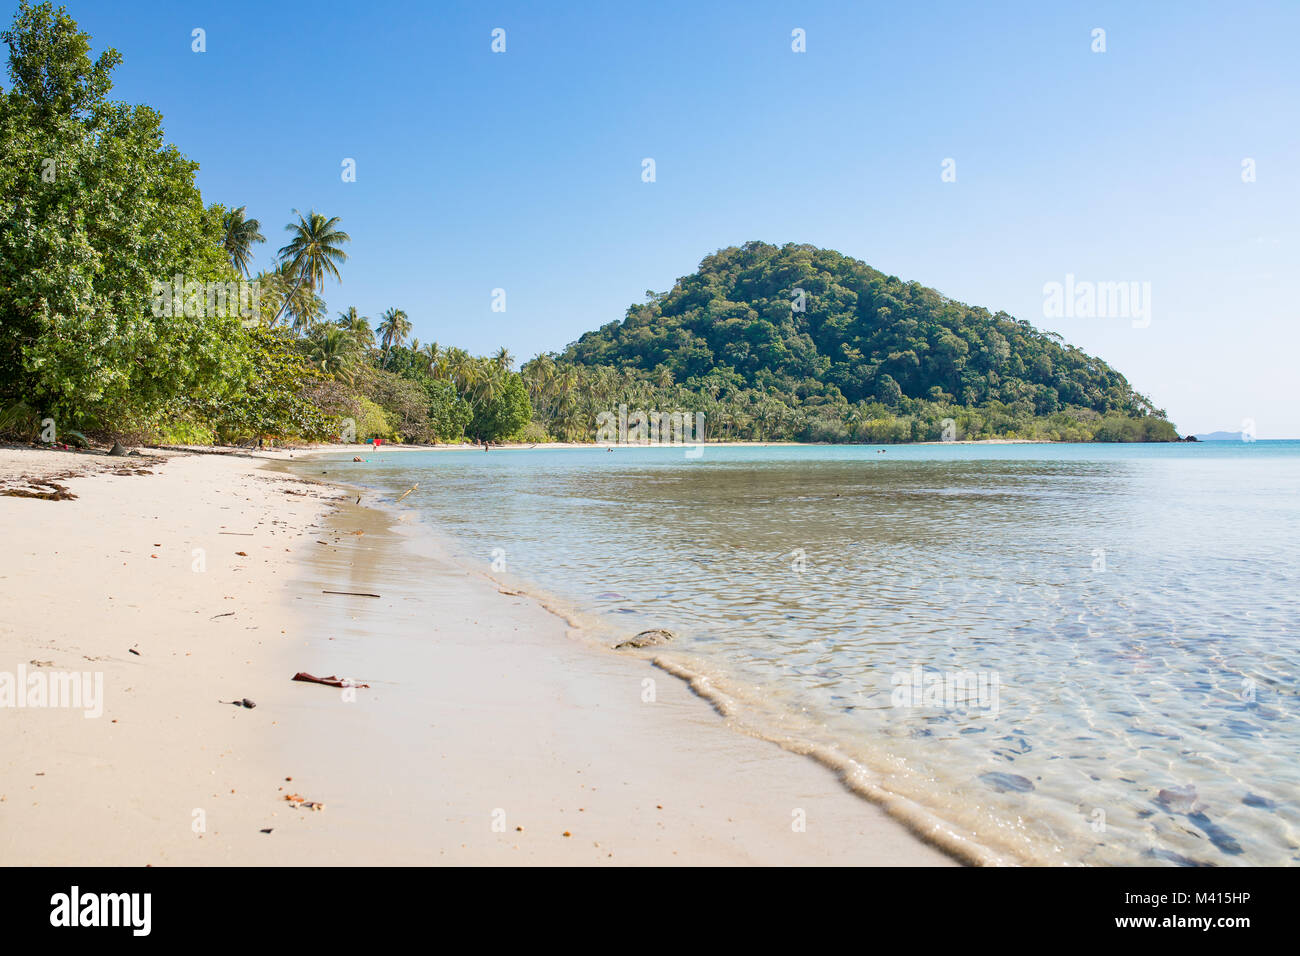 Panoramic coast view, Banana tree, palms and rainforest plants, hills and blue sea. Nature in Asia. Thailand, The Stock Photo